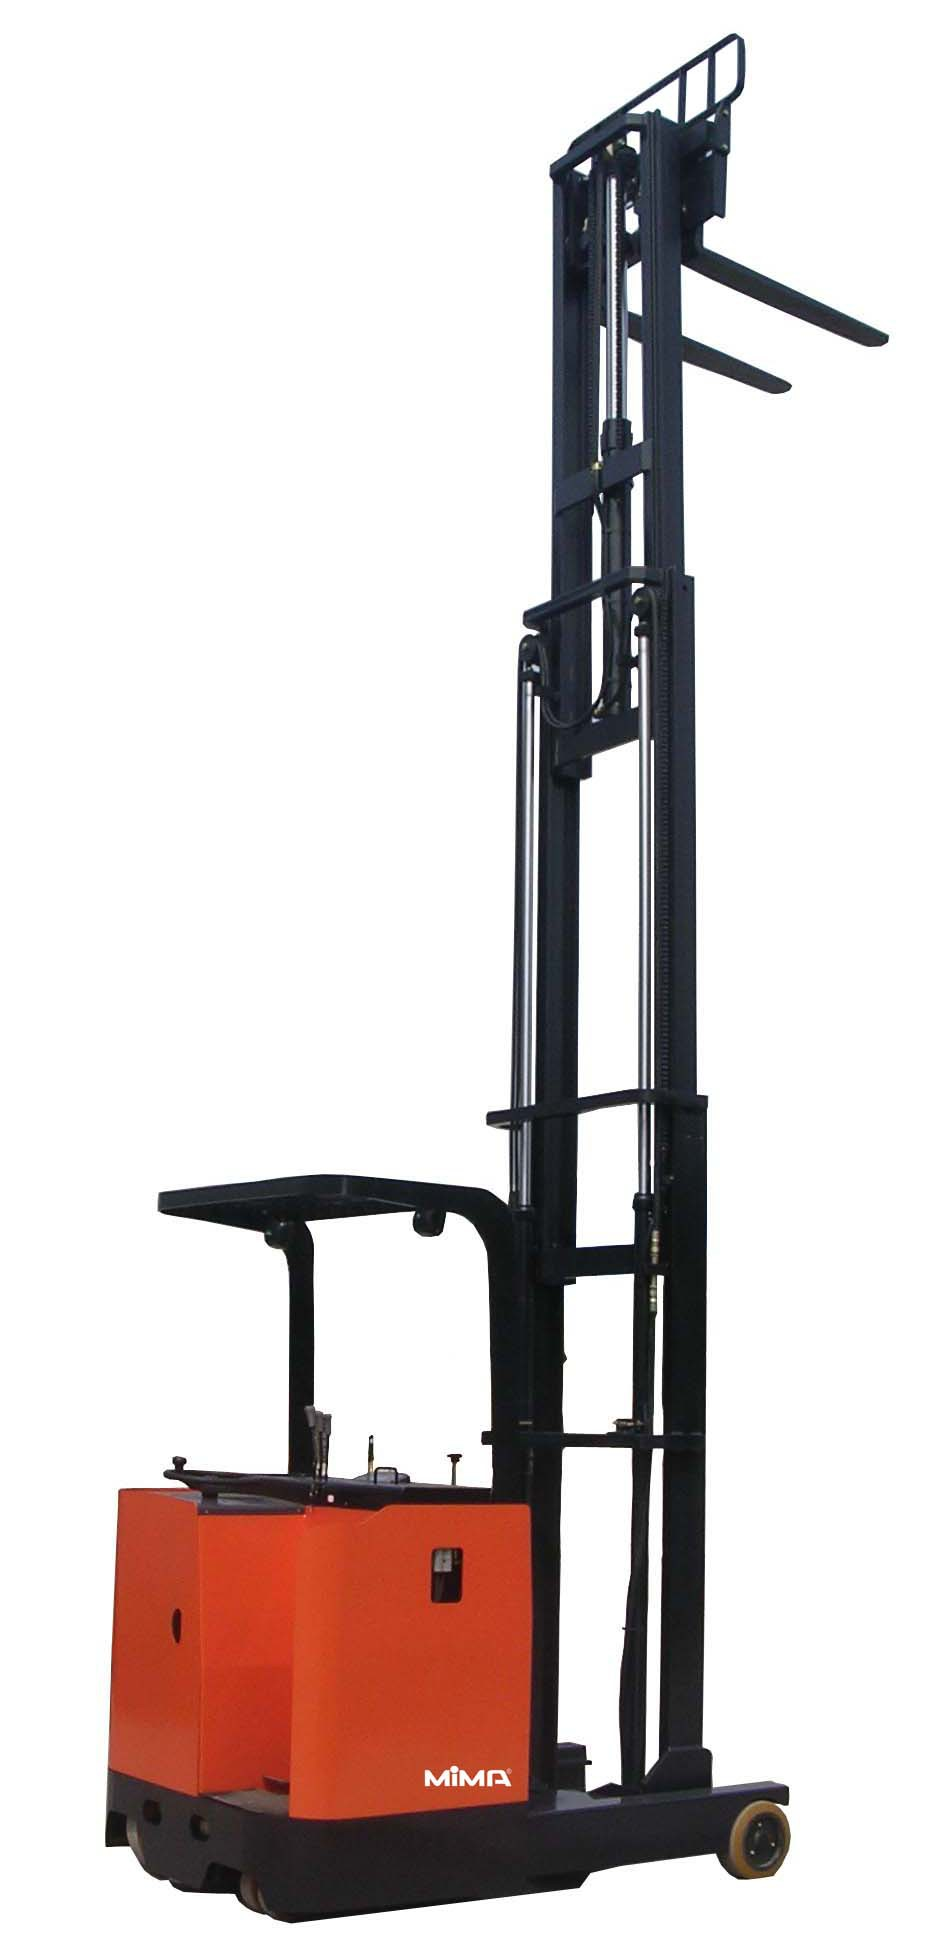 MIMA Electric Reach Truck for Cold Storage Use with lifting 7.2m